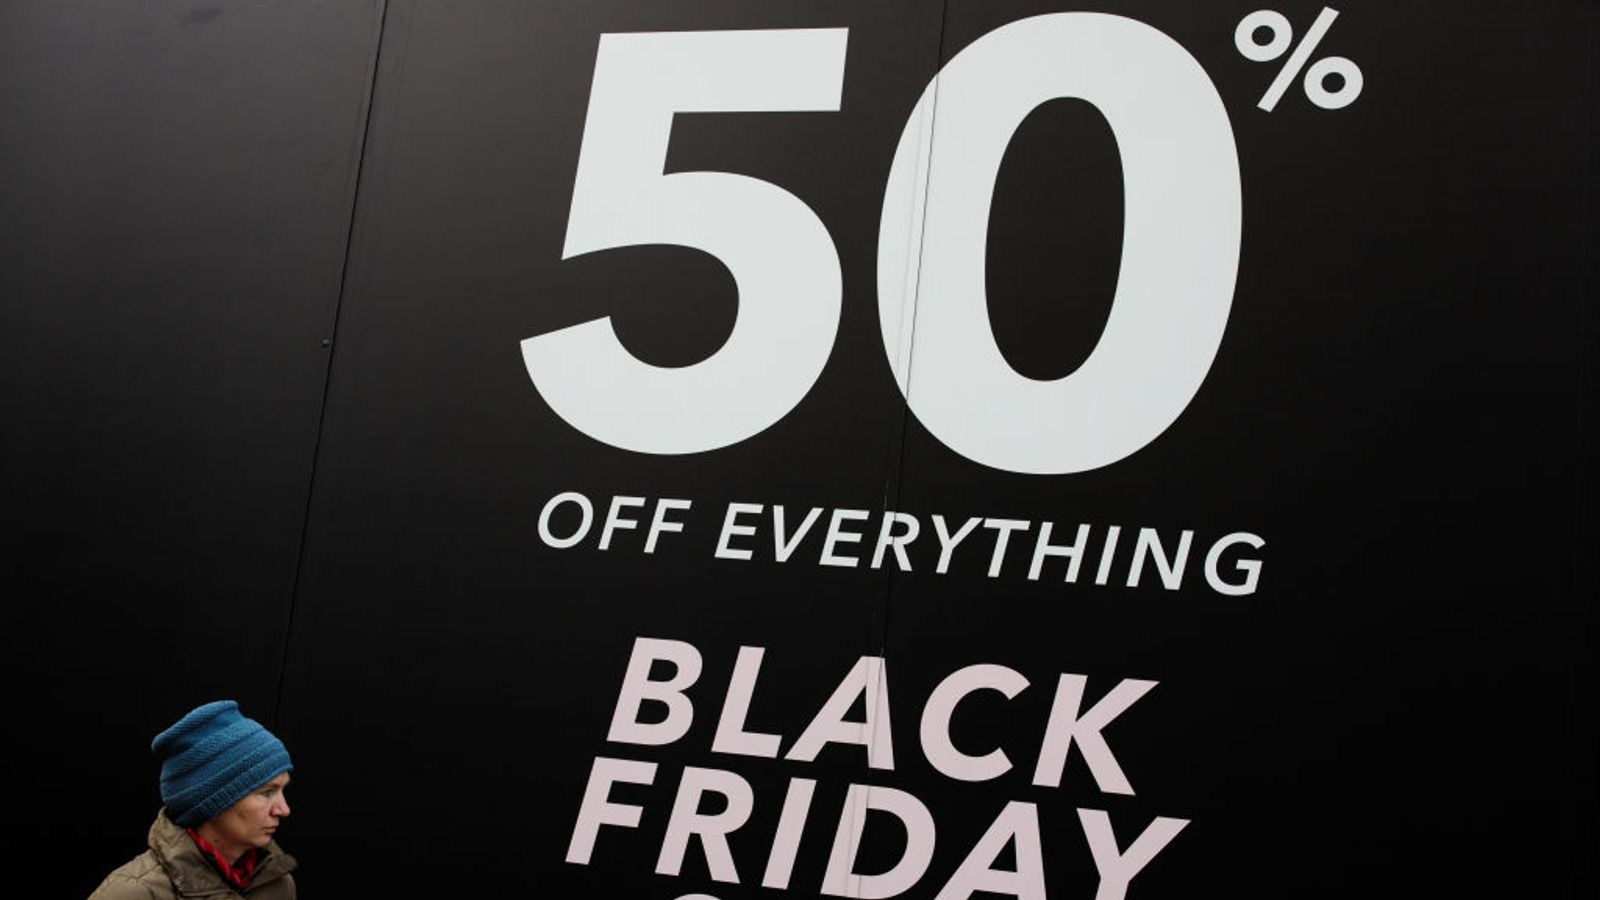 Black Friday discounting fails to add sparkle to retail sales - EpicNews